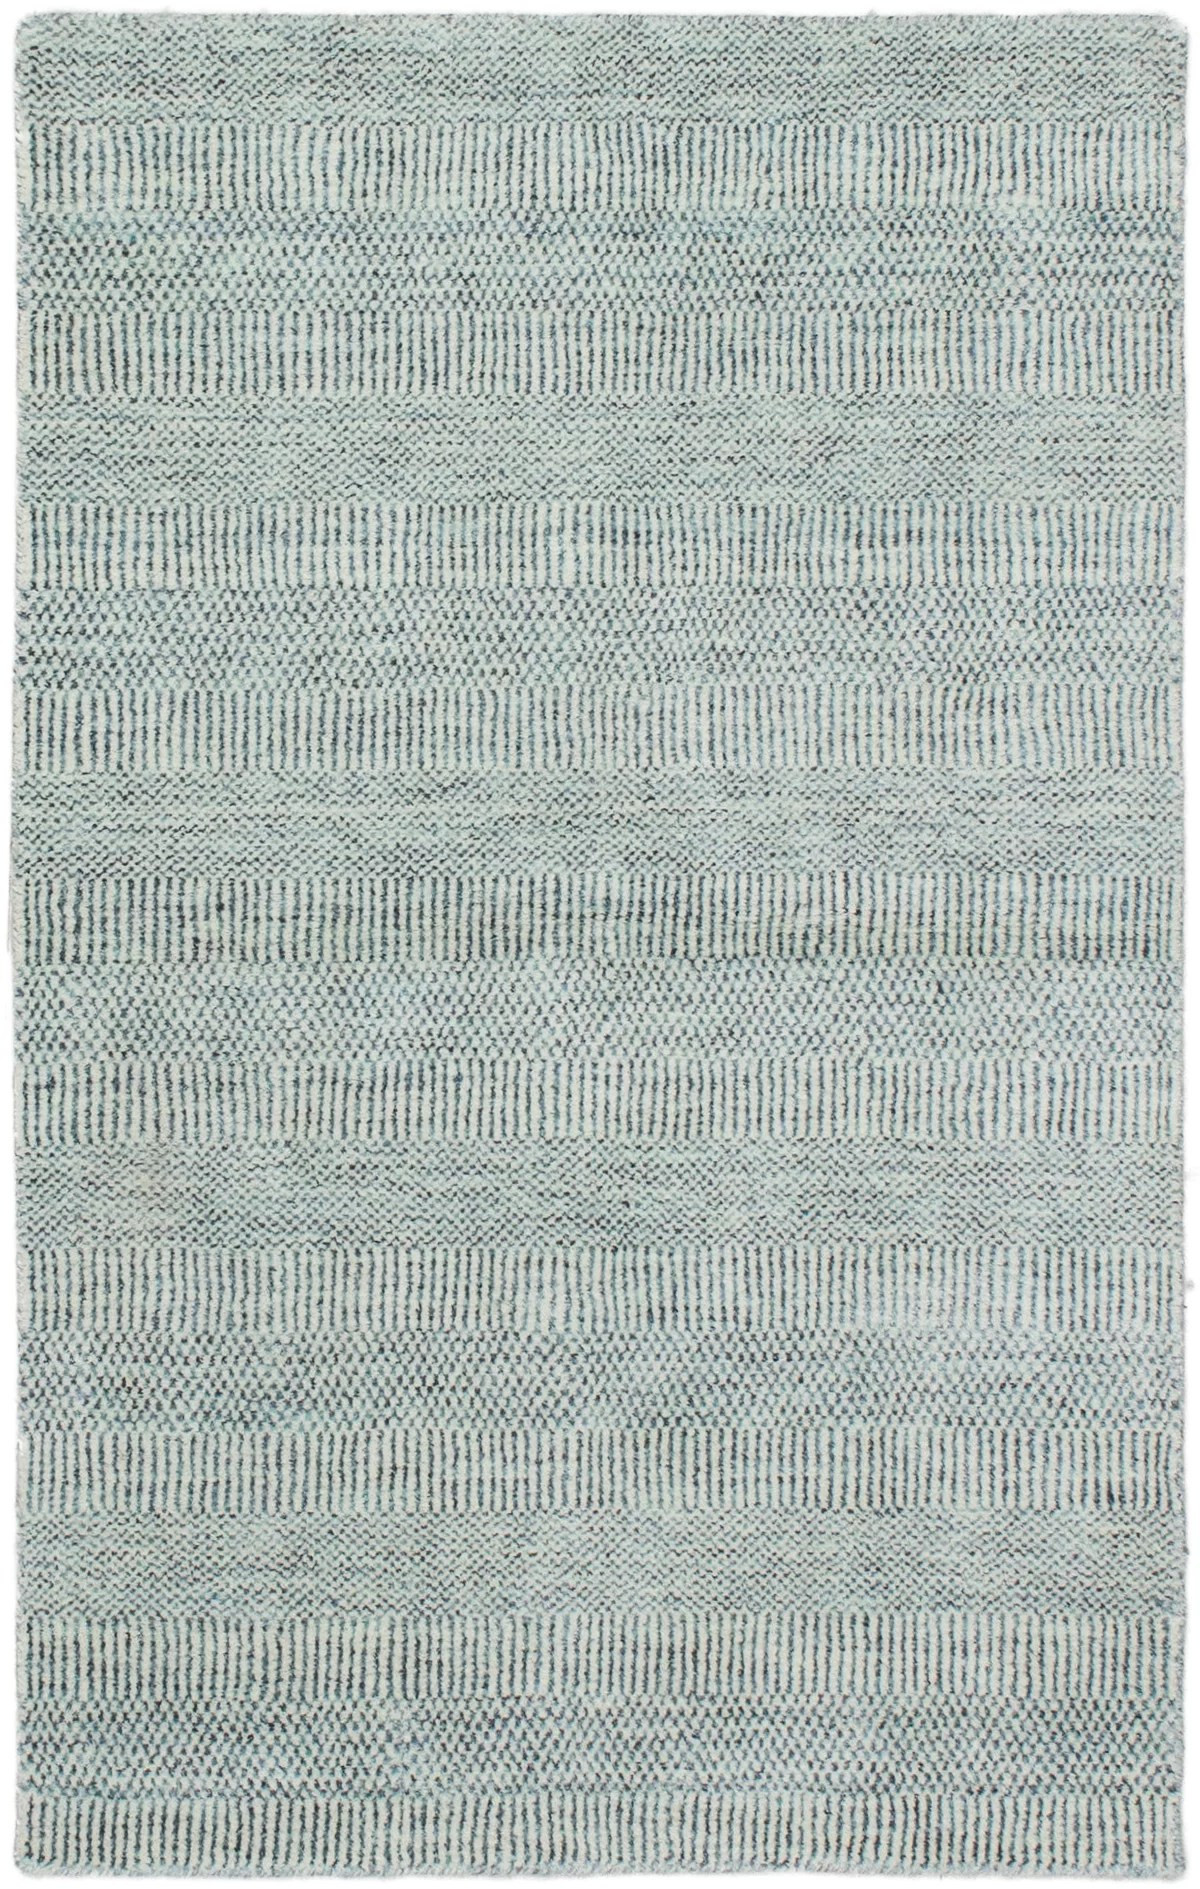 Brayden Studio Spencyr Pearl Hand Knotted Gray Blue Area